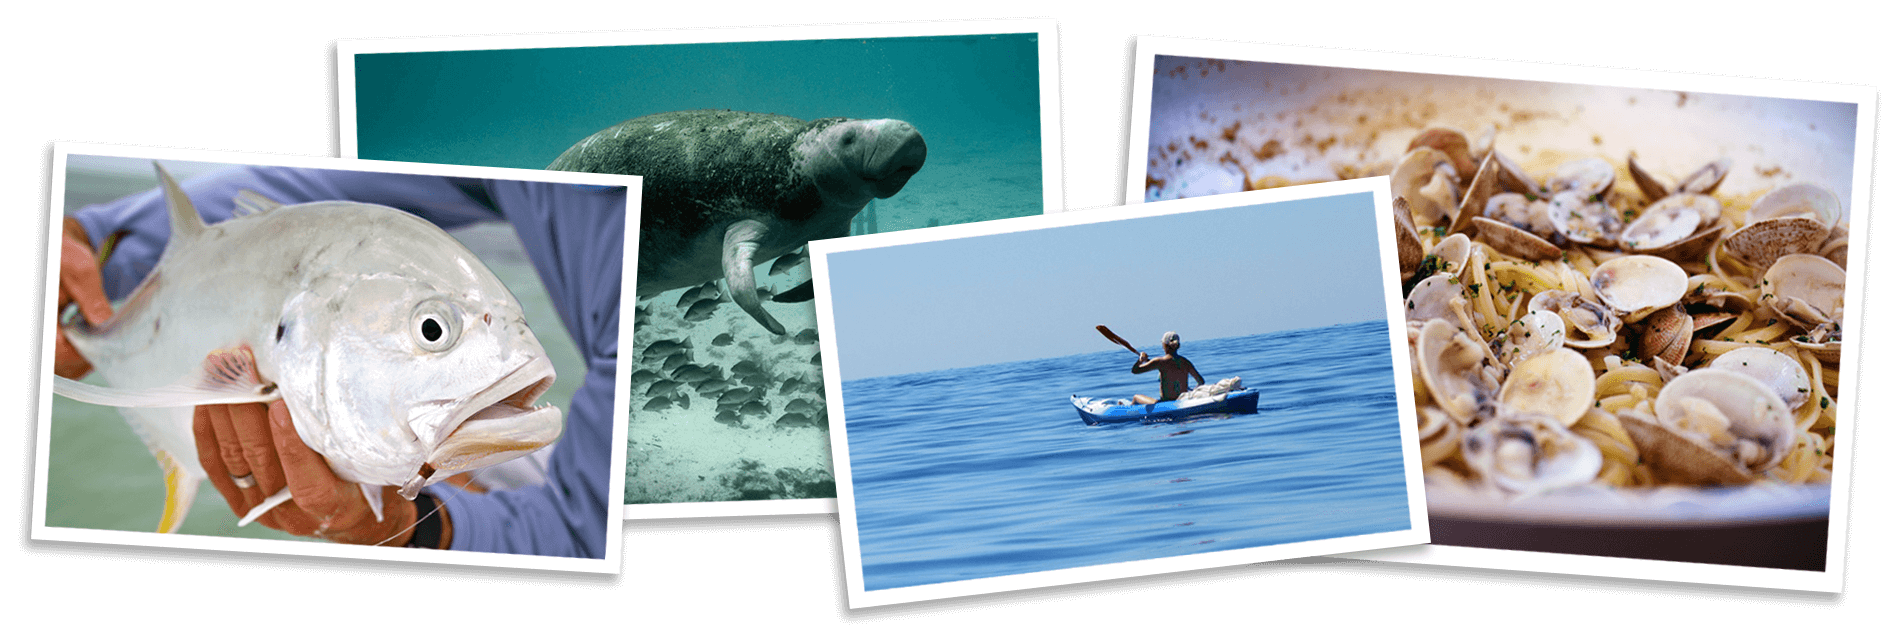 Visit Cedar Key - Kayak, Fish, See Manatees, Clam seafood dinner